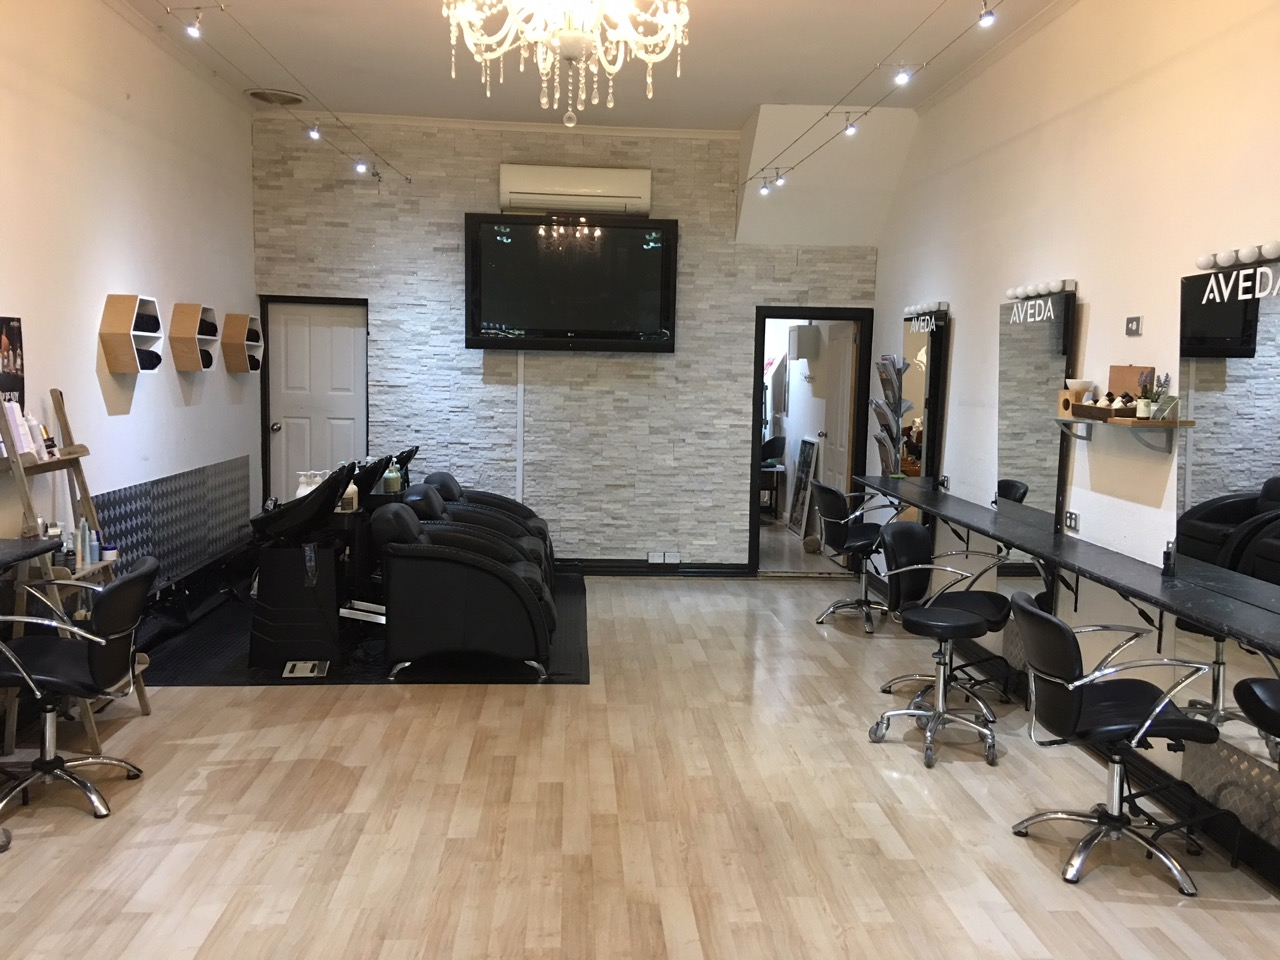 5 Day Hair and Beauty Salon Business for Sale City Fringe